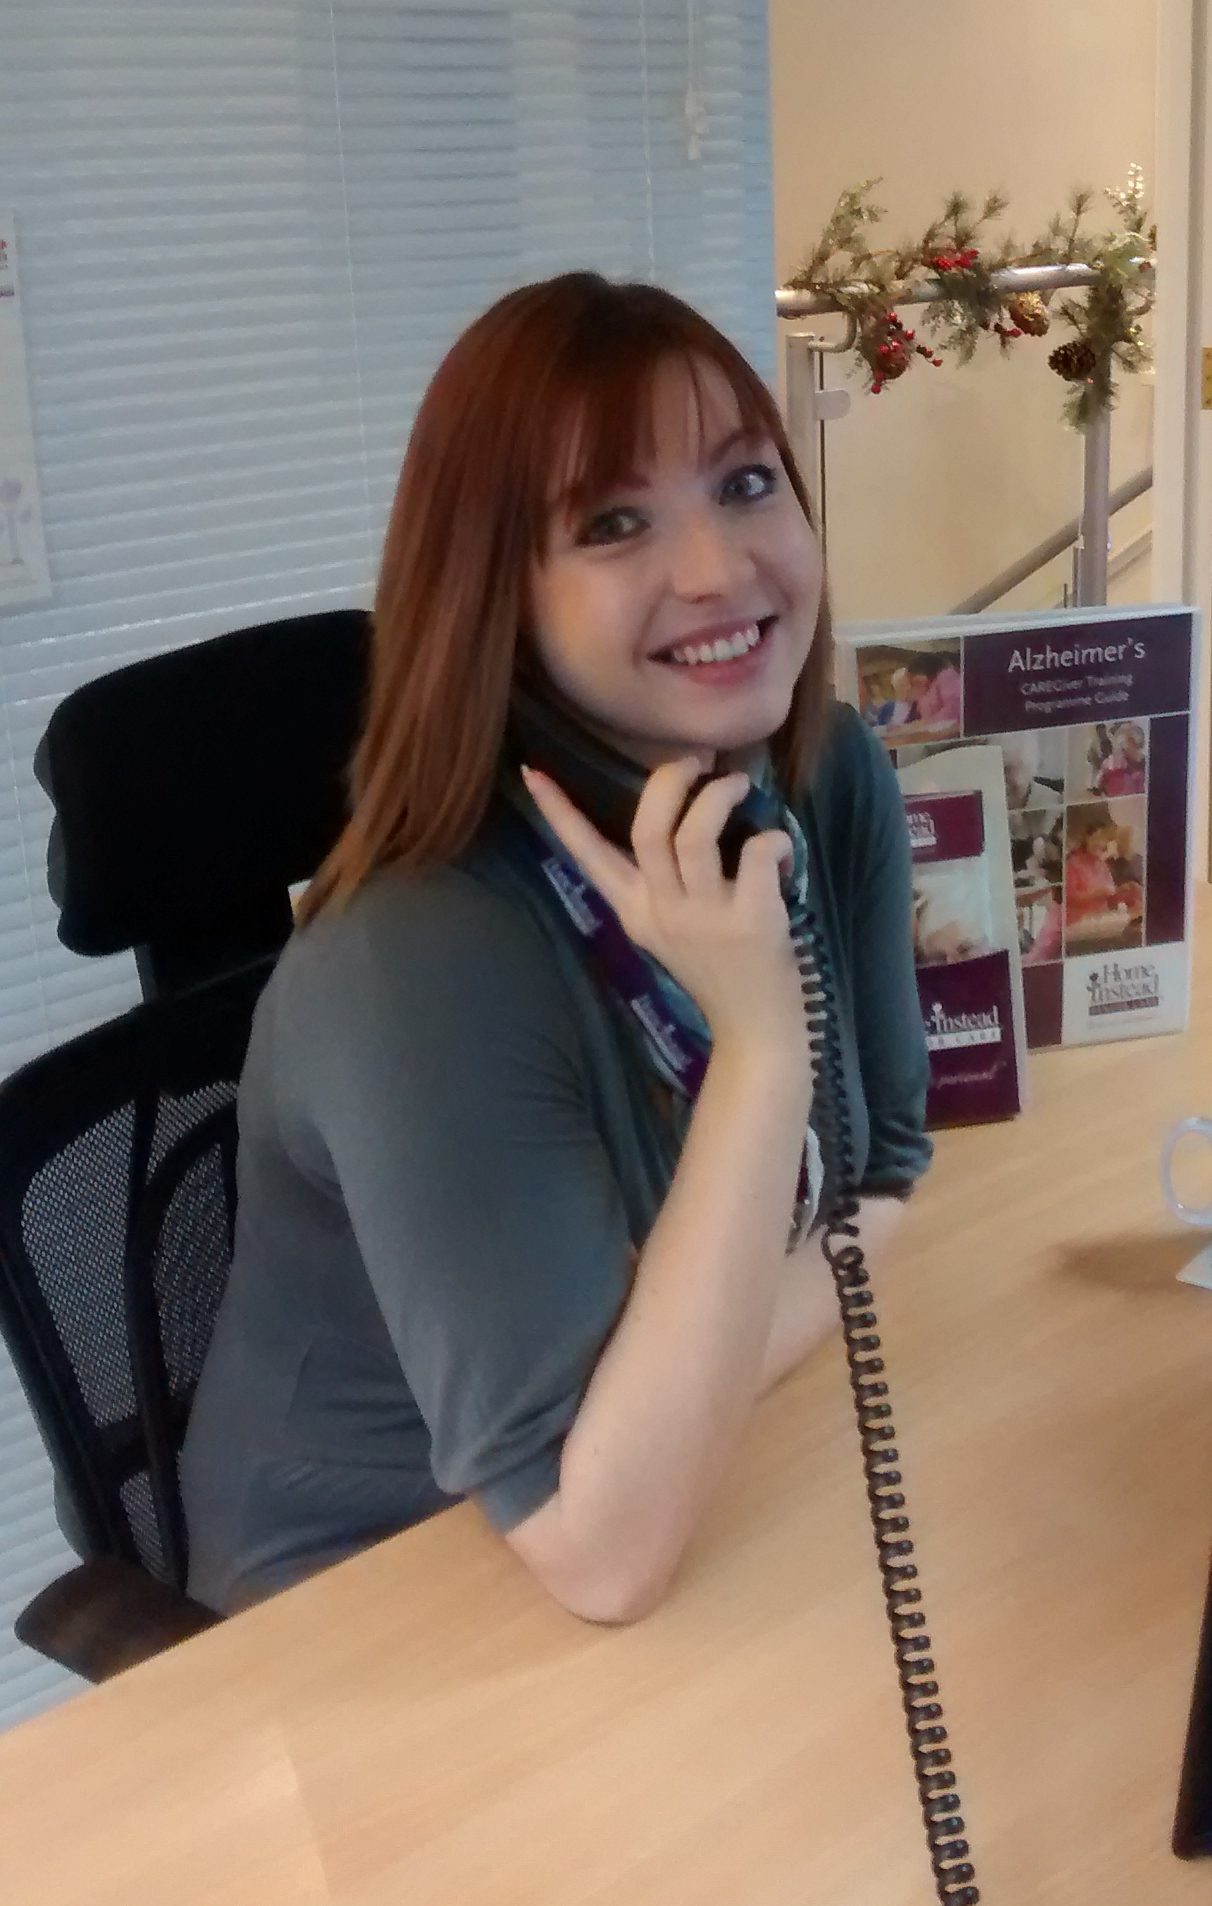 24-year-old CAREgiver Emma Needham at Home Instead Senior Care office in Oldham and Saddleworth